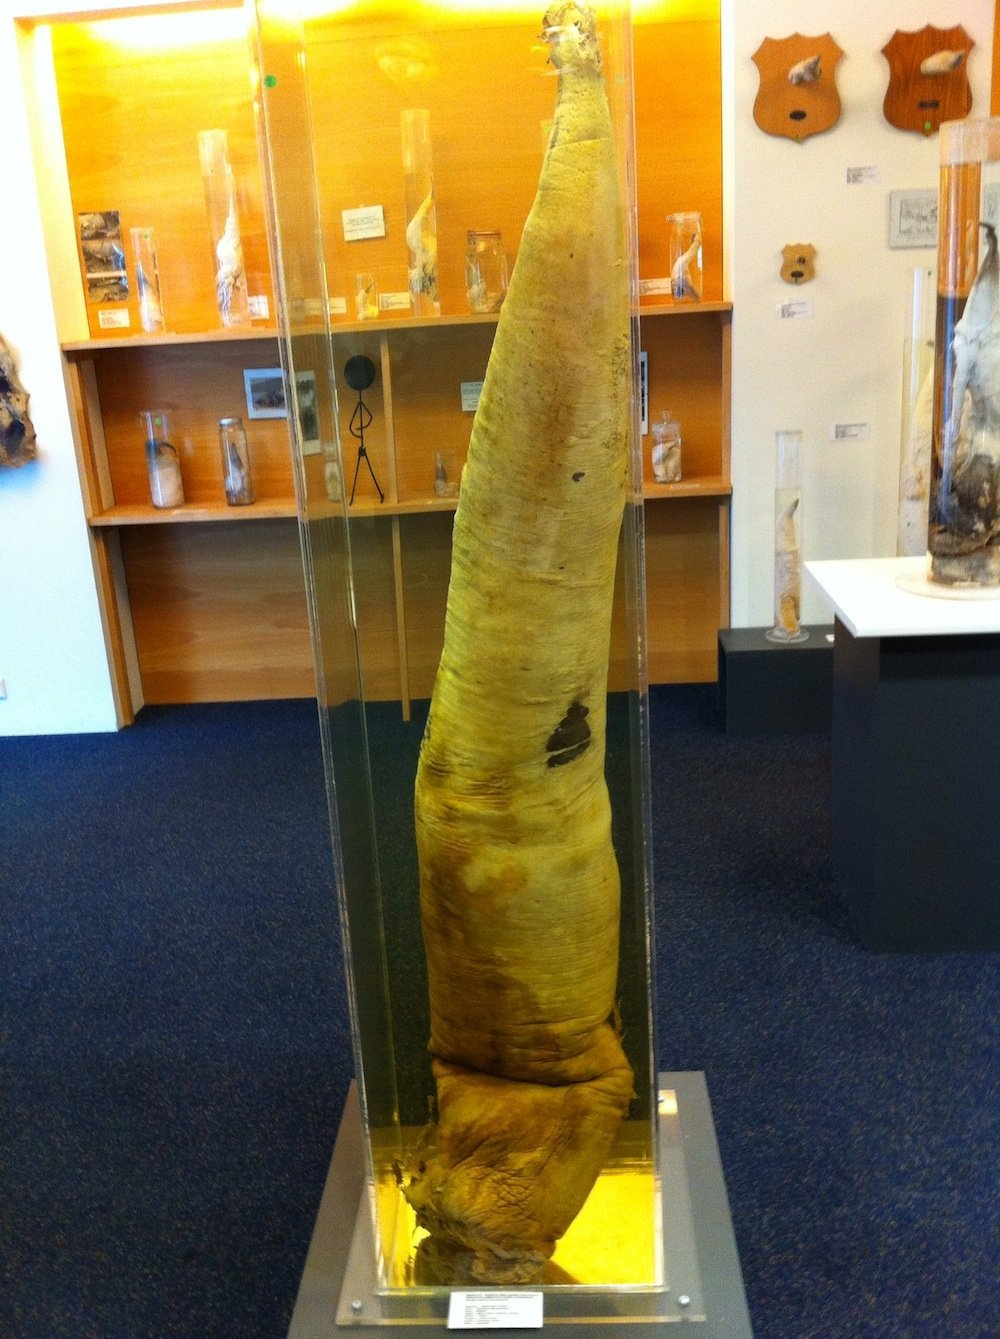 Whale penis on display at the Iceland Phallological Museum.